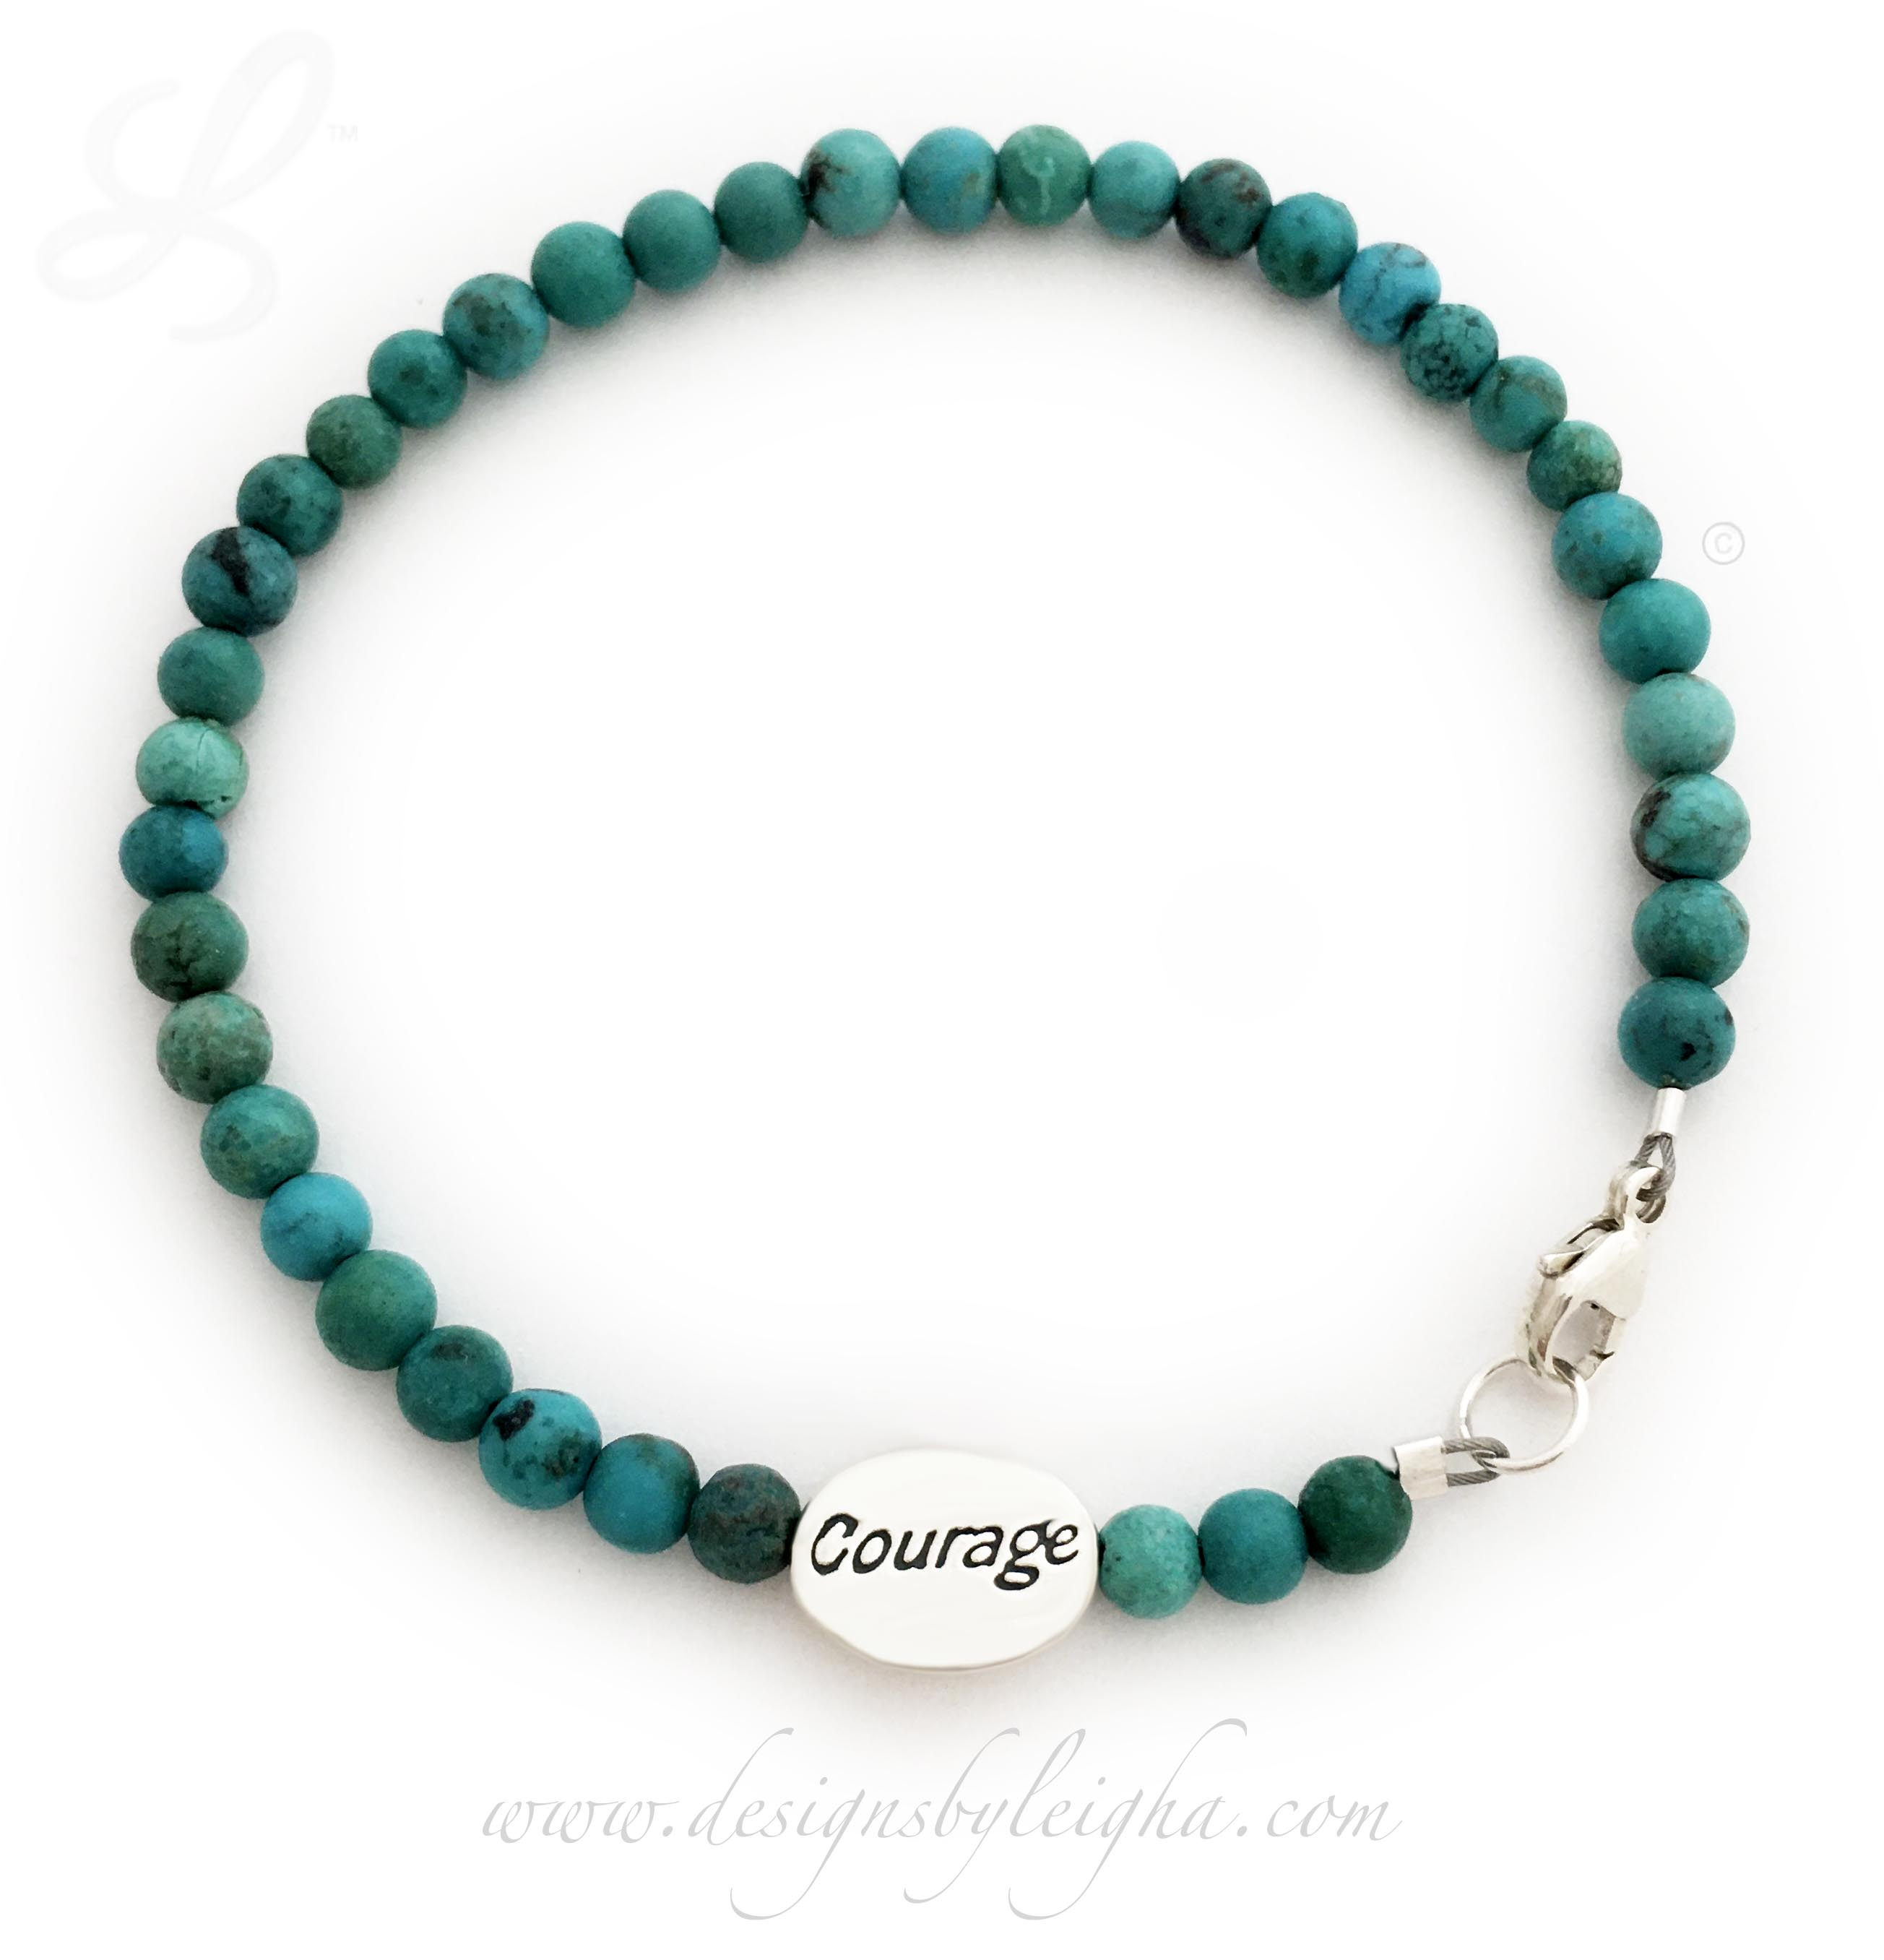 CBB-R60.htm  This is a Turquoise Courage Bracelet. I also have Hope, Survivor and In Memory Beads.